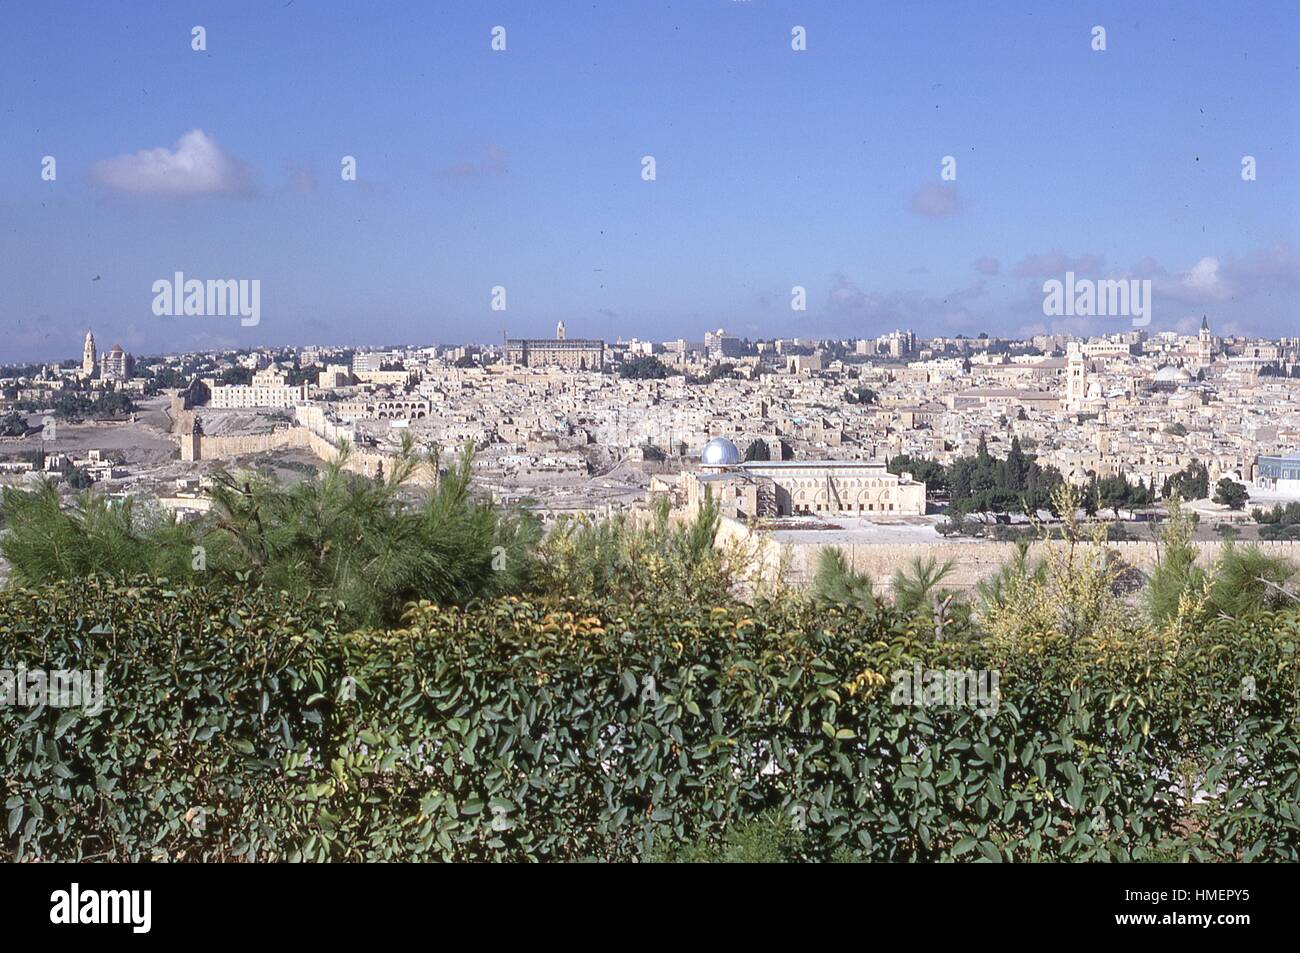 Panoramic southern view of the buildings and towers of the Old City of Jerusalem, Israel, with native foliage in - Stock Image